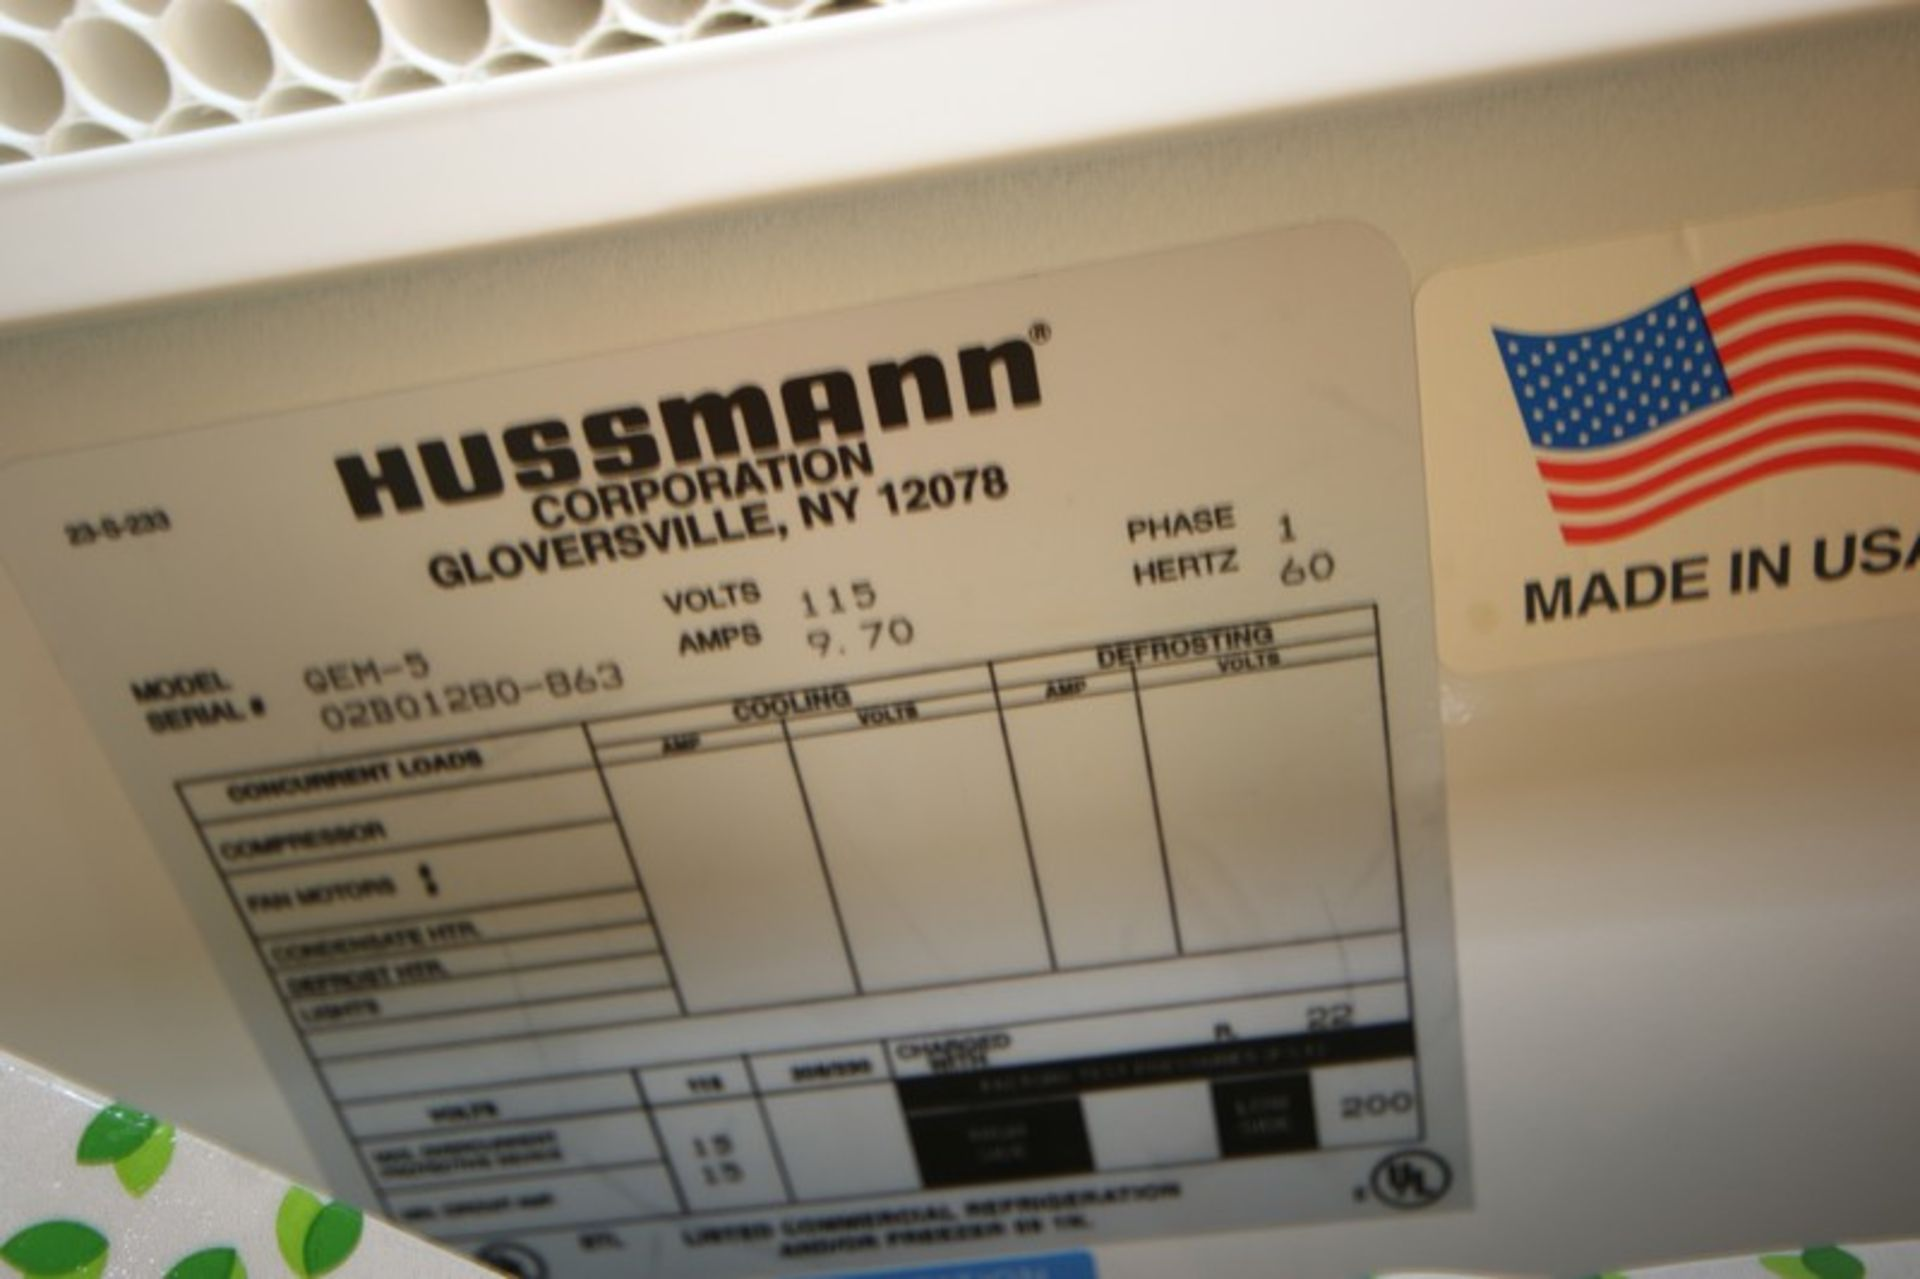 Hussman 5-Door Refrigeration Unit, M/N GEM-5,S/N 02BQ1280-863, 115 Volts, 1 Phase, Overall Dims.: - Image 3 of 3